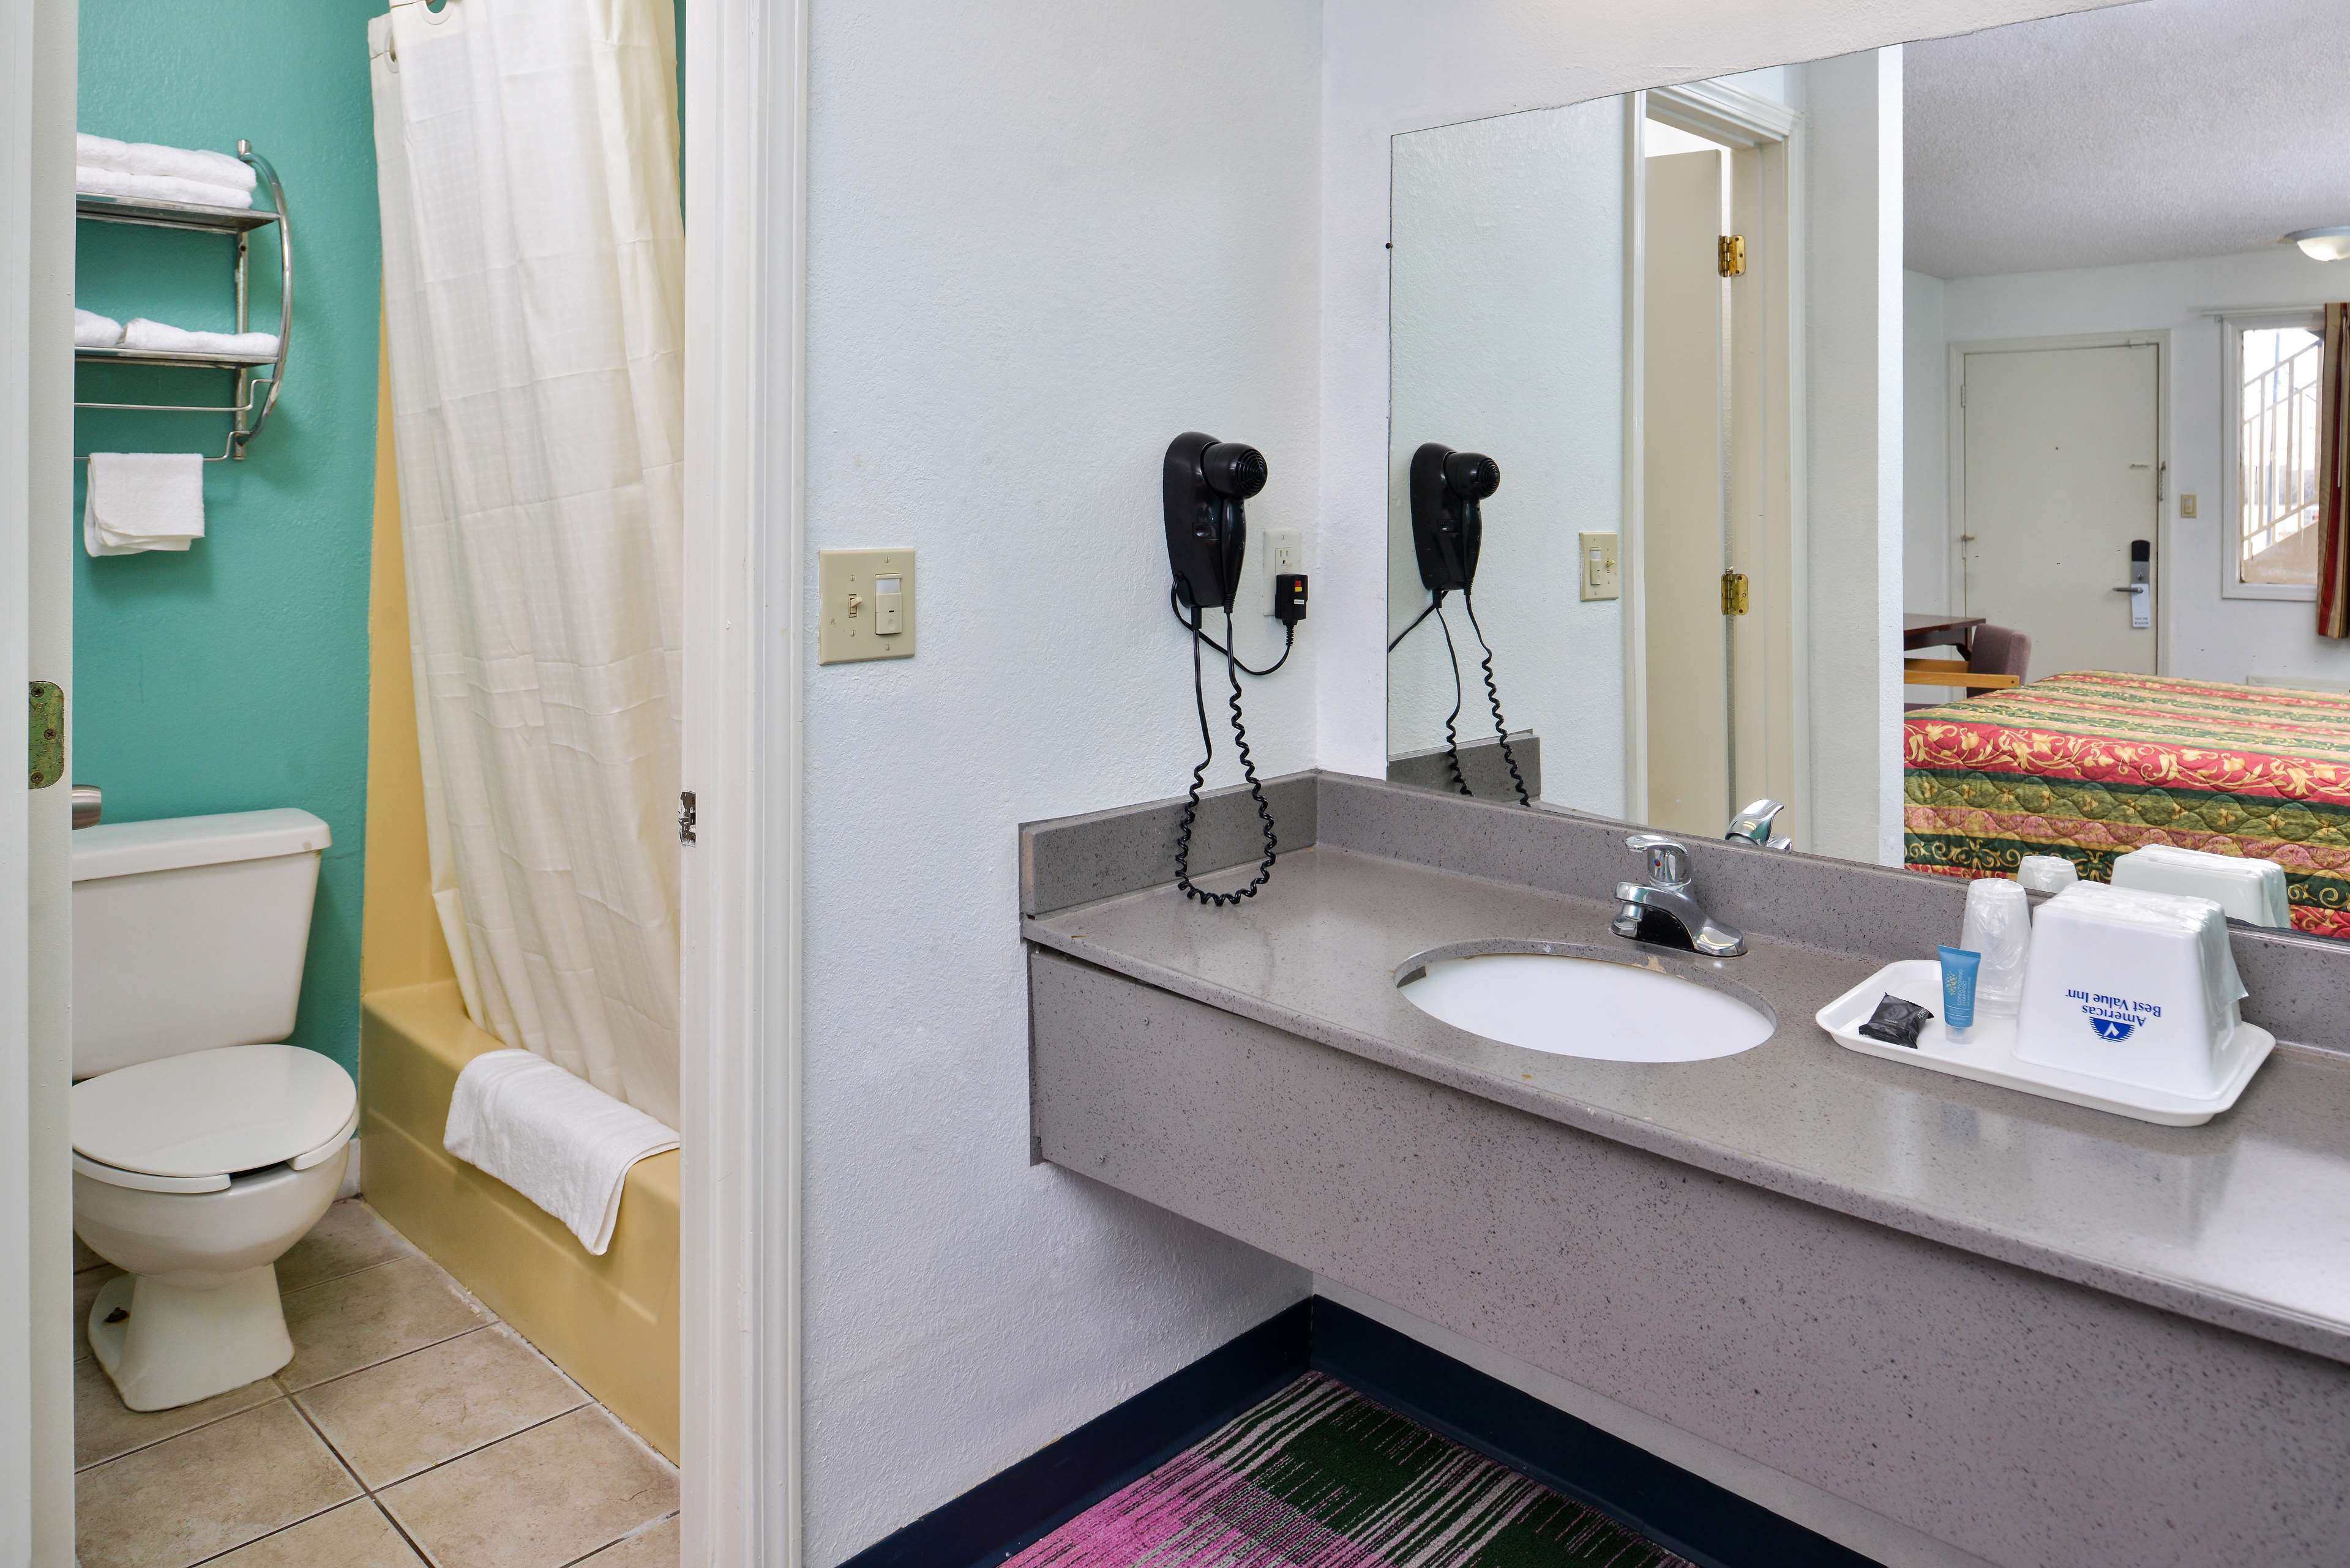 Americas Best Value Inn - Indy South image 10